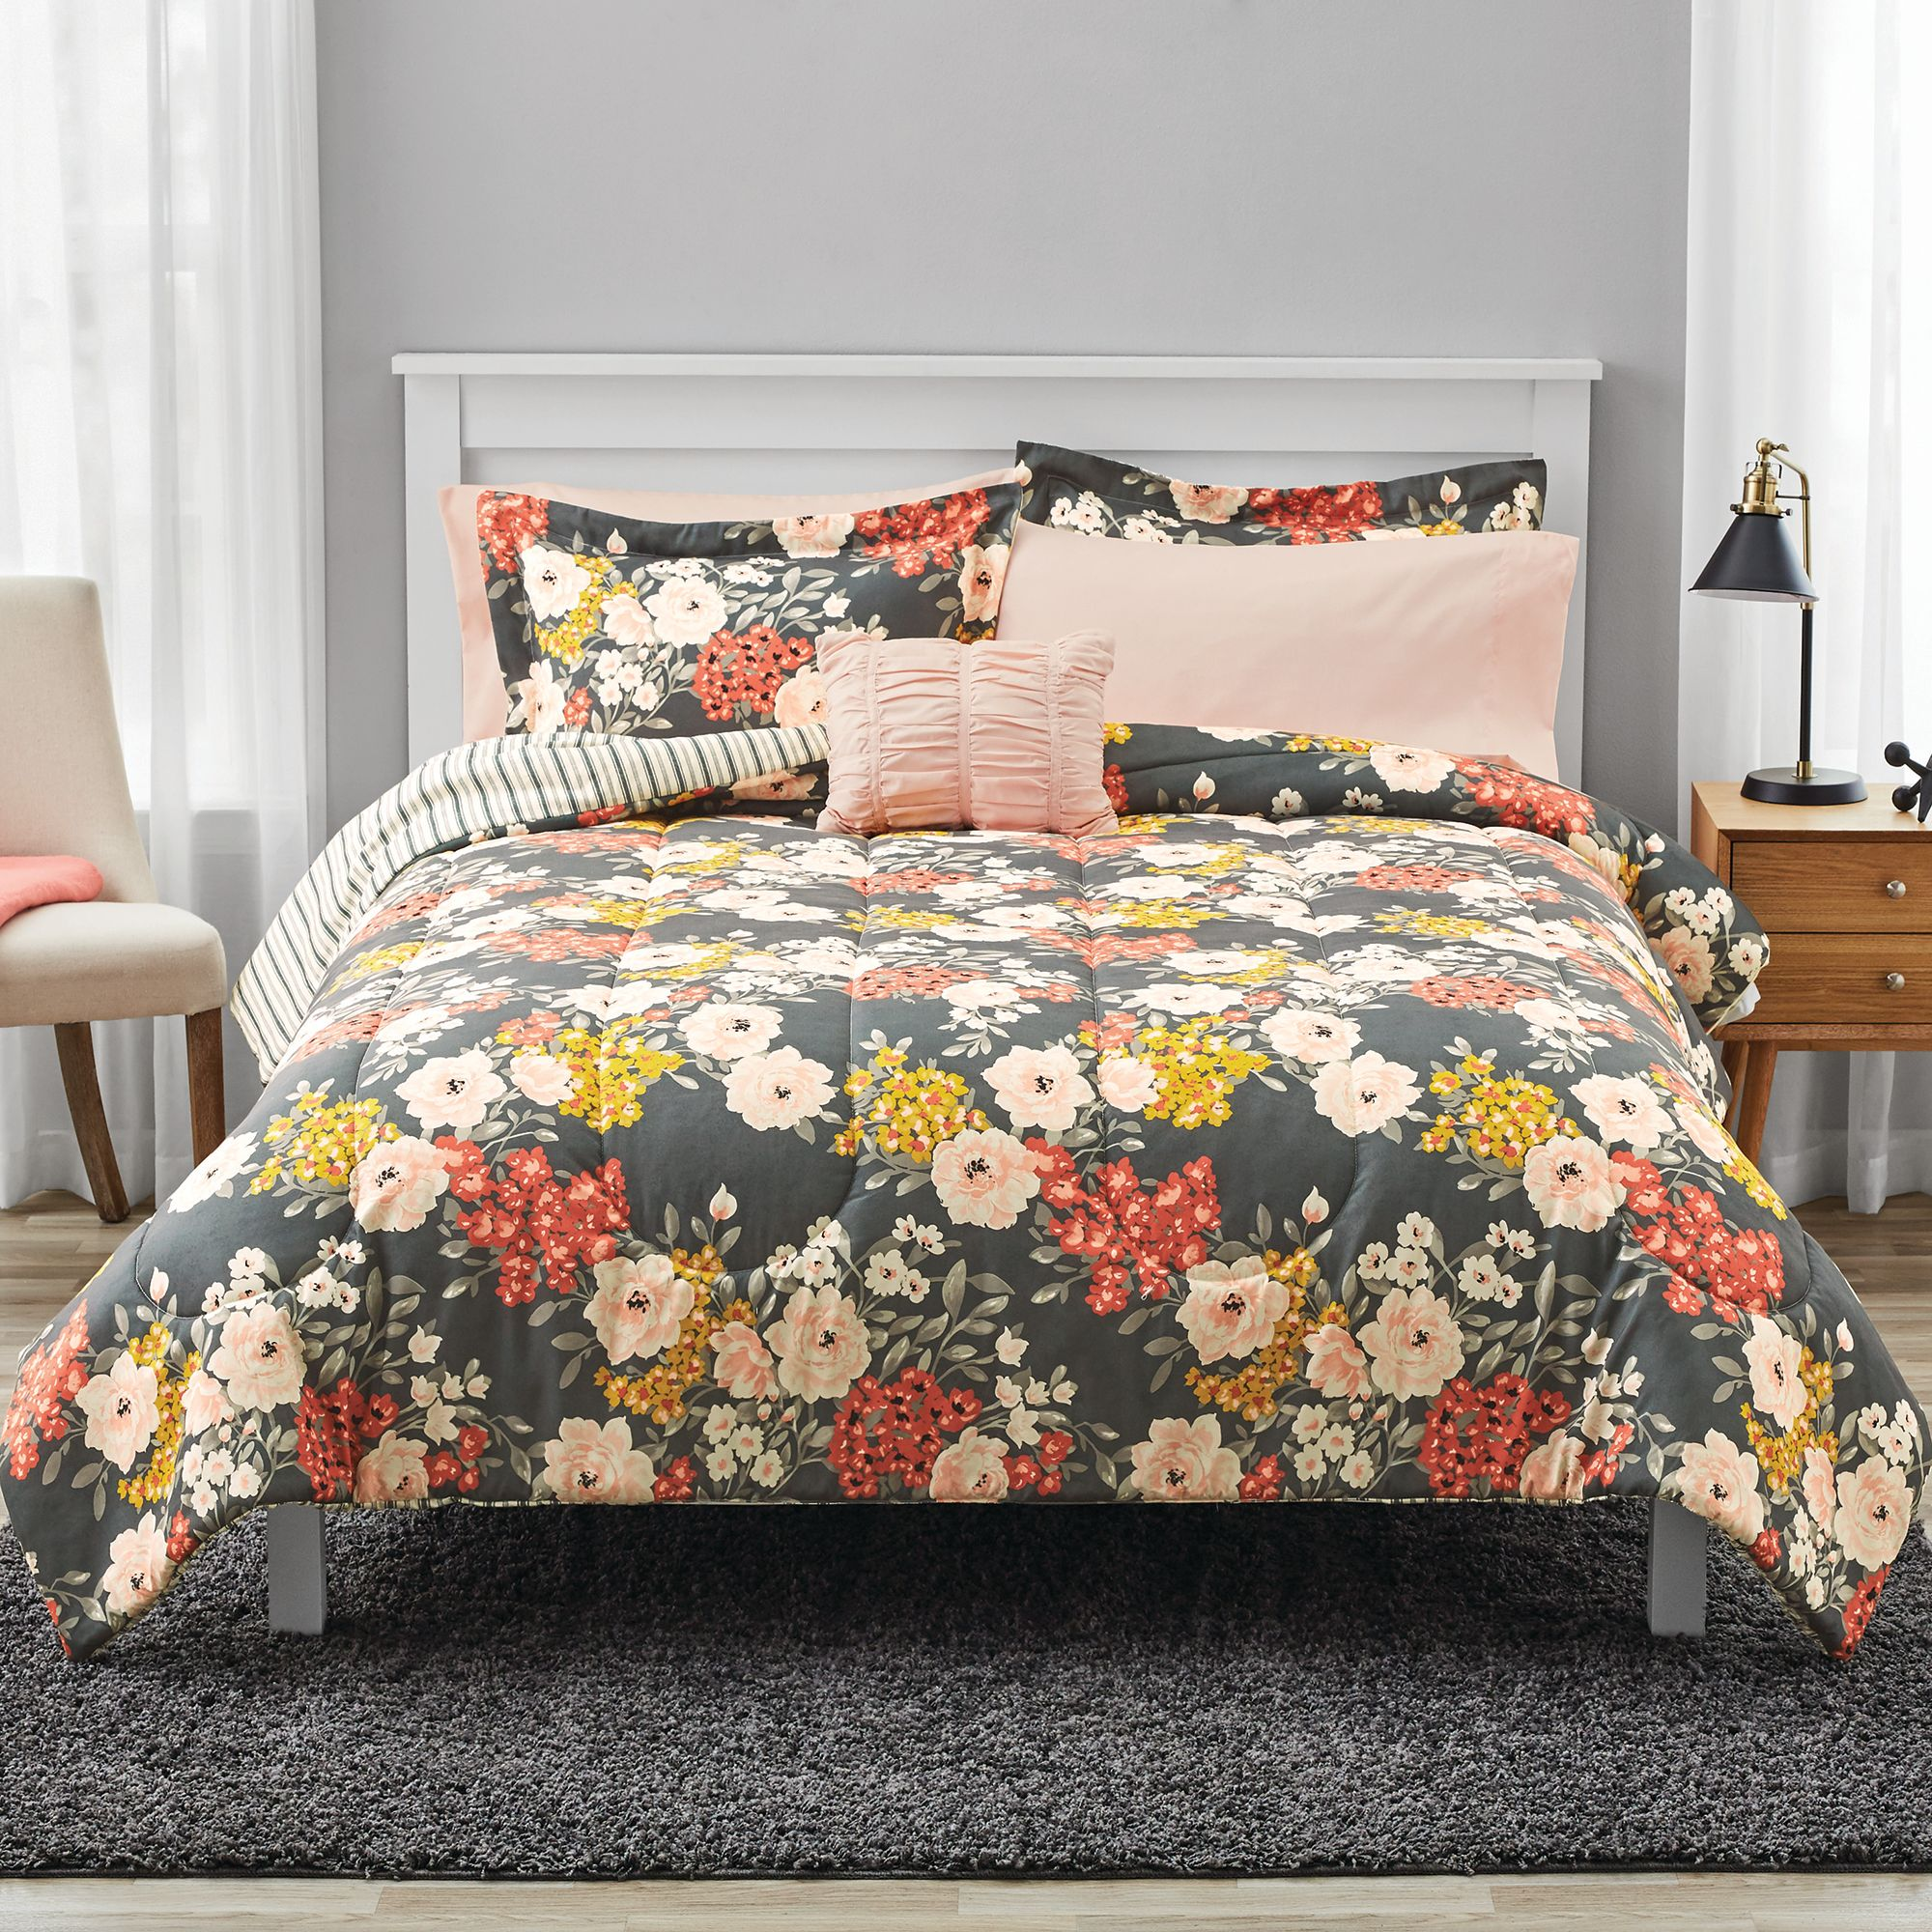 Mainstays Grey Floral Bed In A Bag Comforter Bedding Set